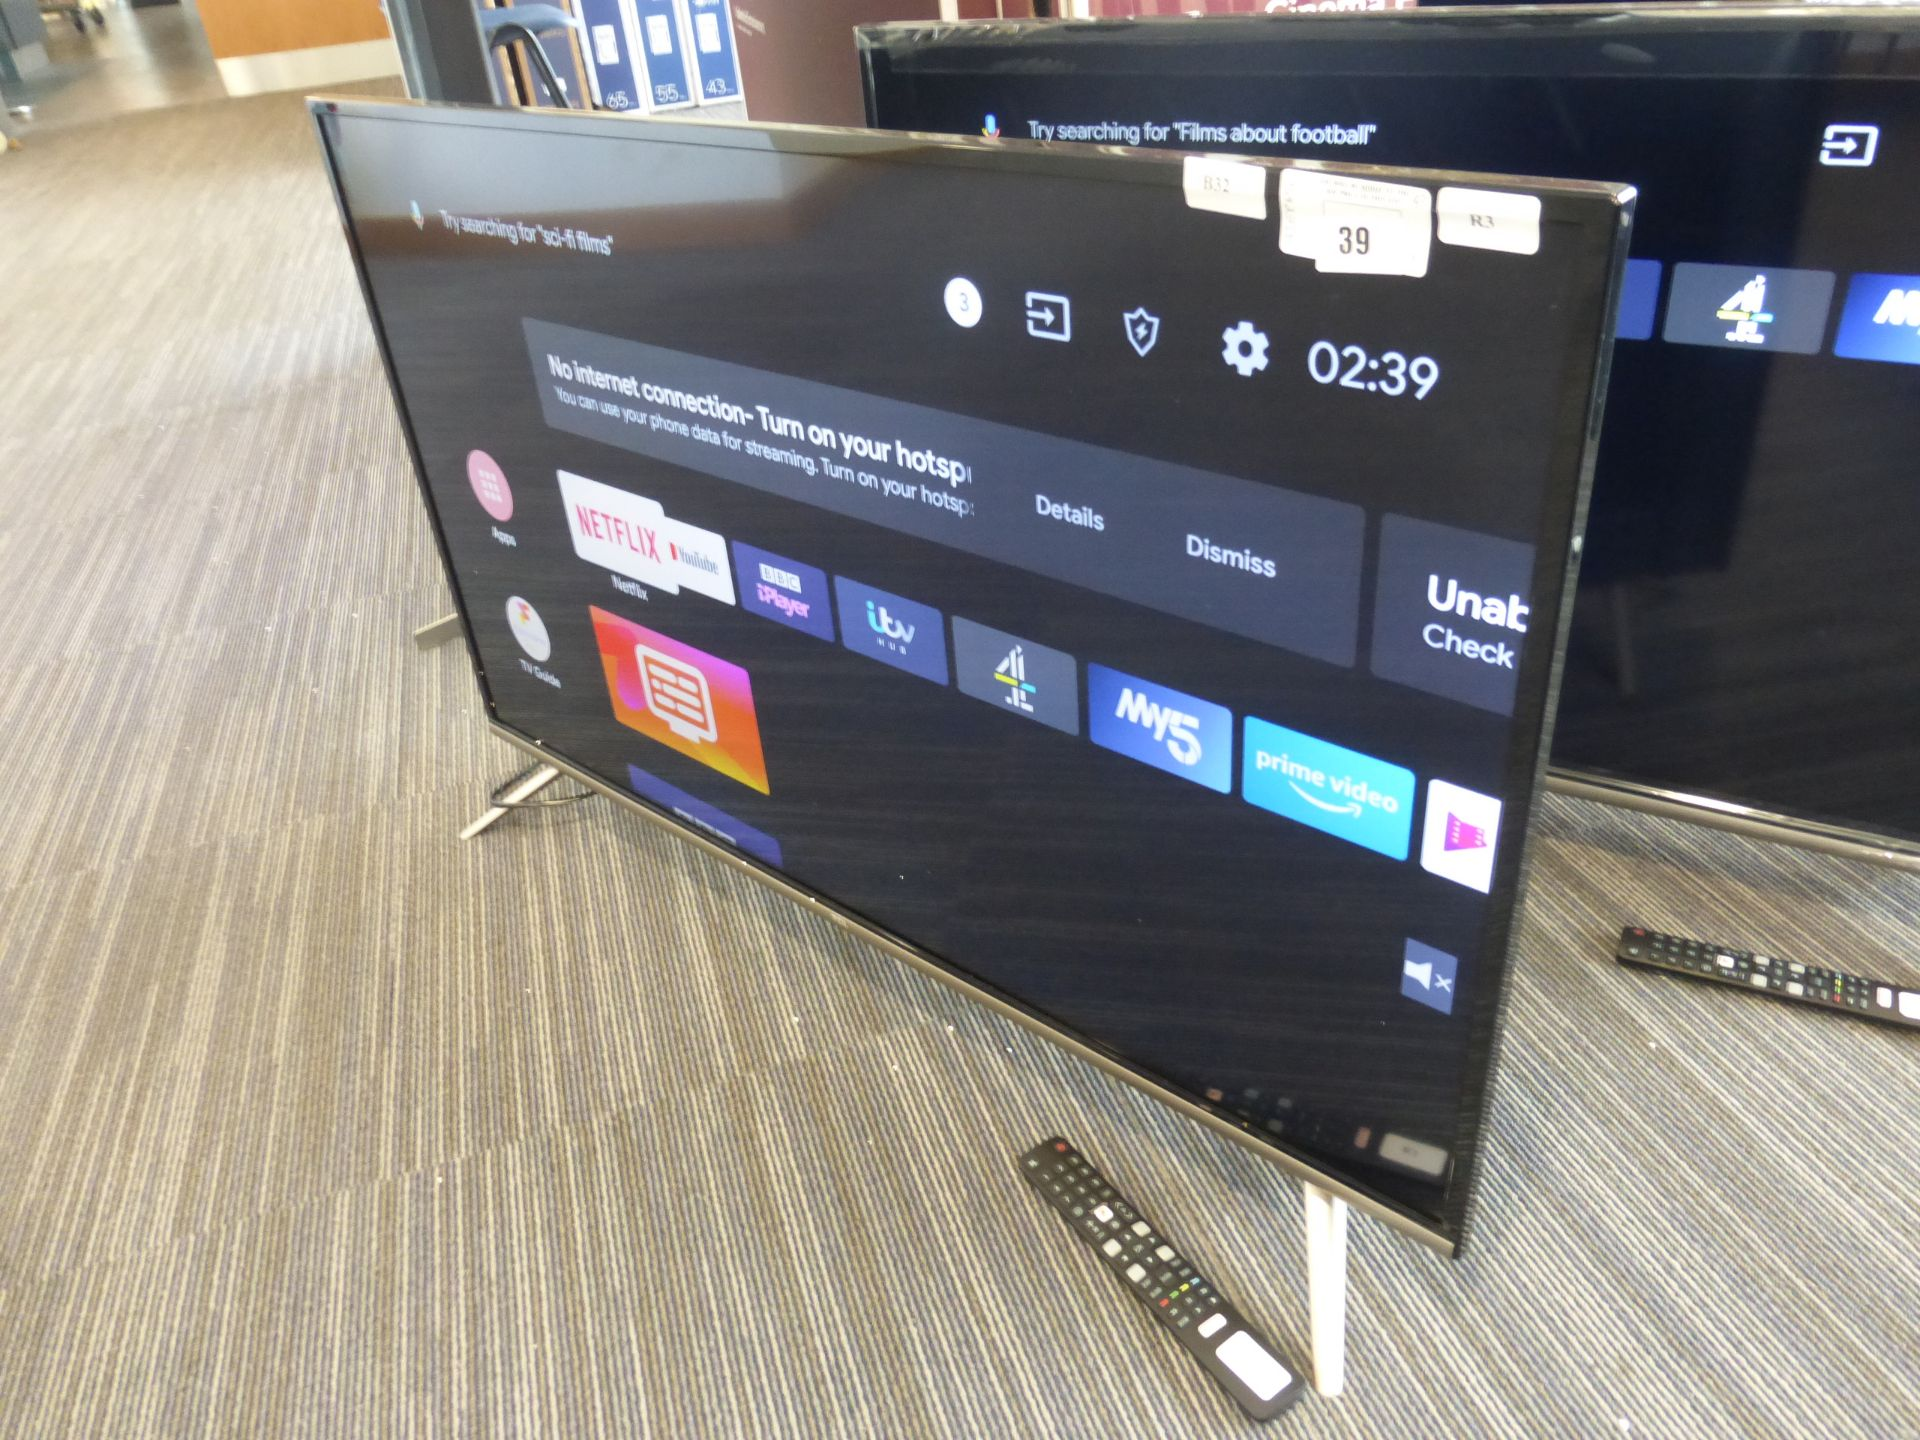 TCL 43'' TV Model: 43EP658, includes remote (R3) and box (B32) Screen has no visible damage, sound